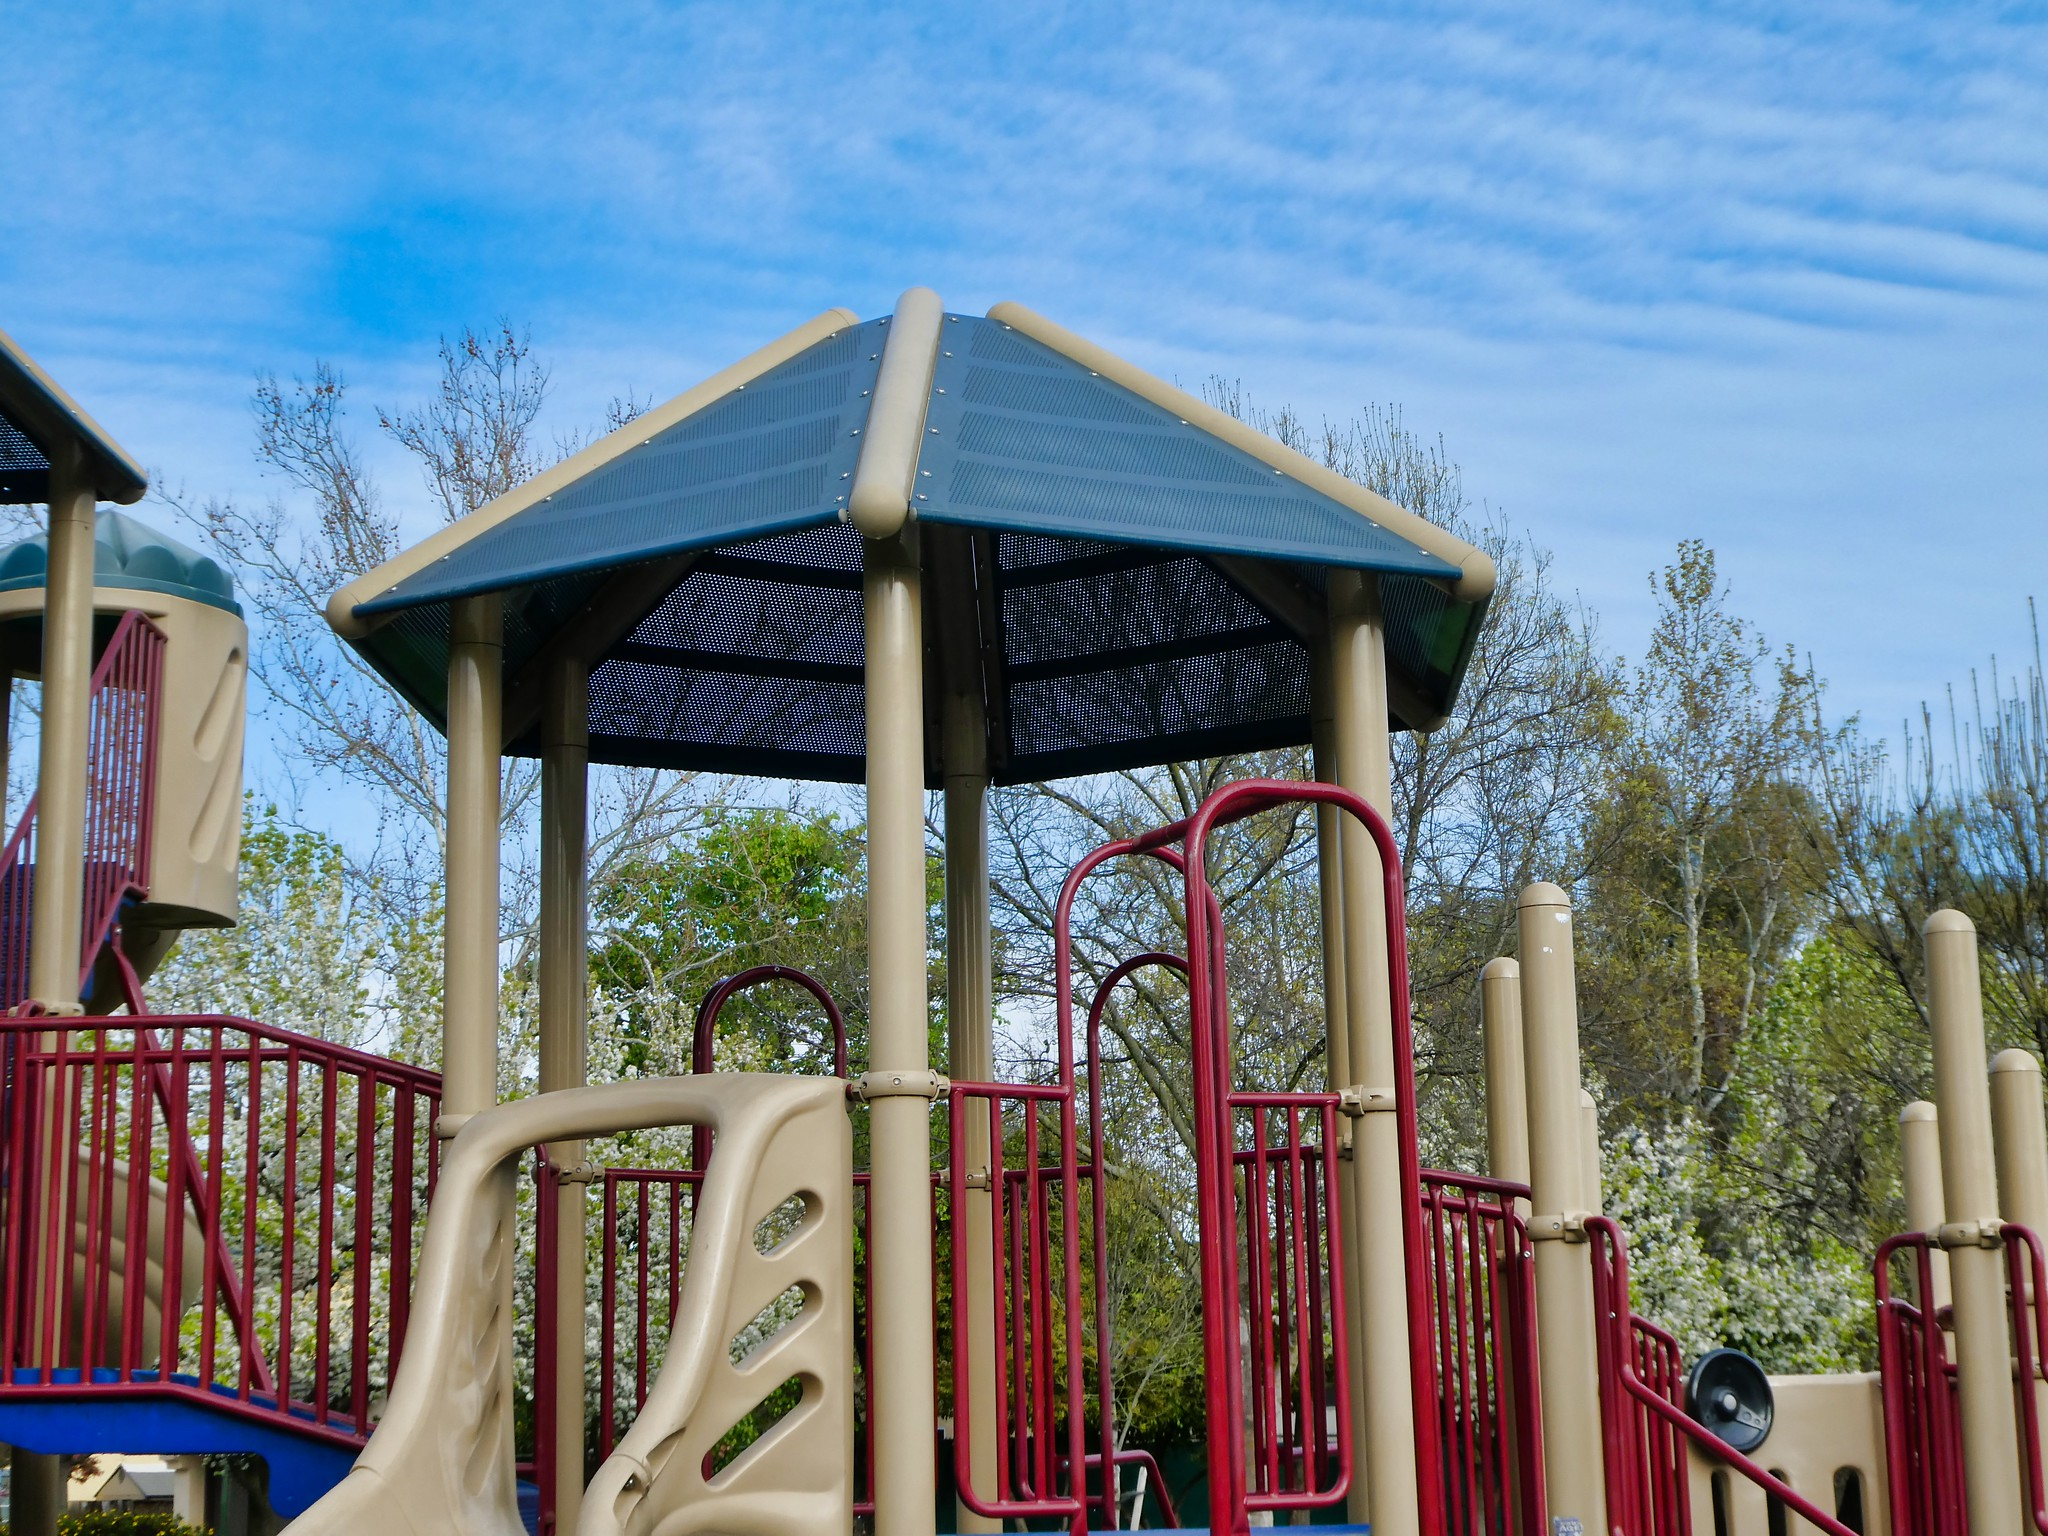 2019-03-26 - Street Photography – Structures – Playground Equipment